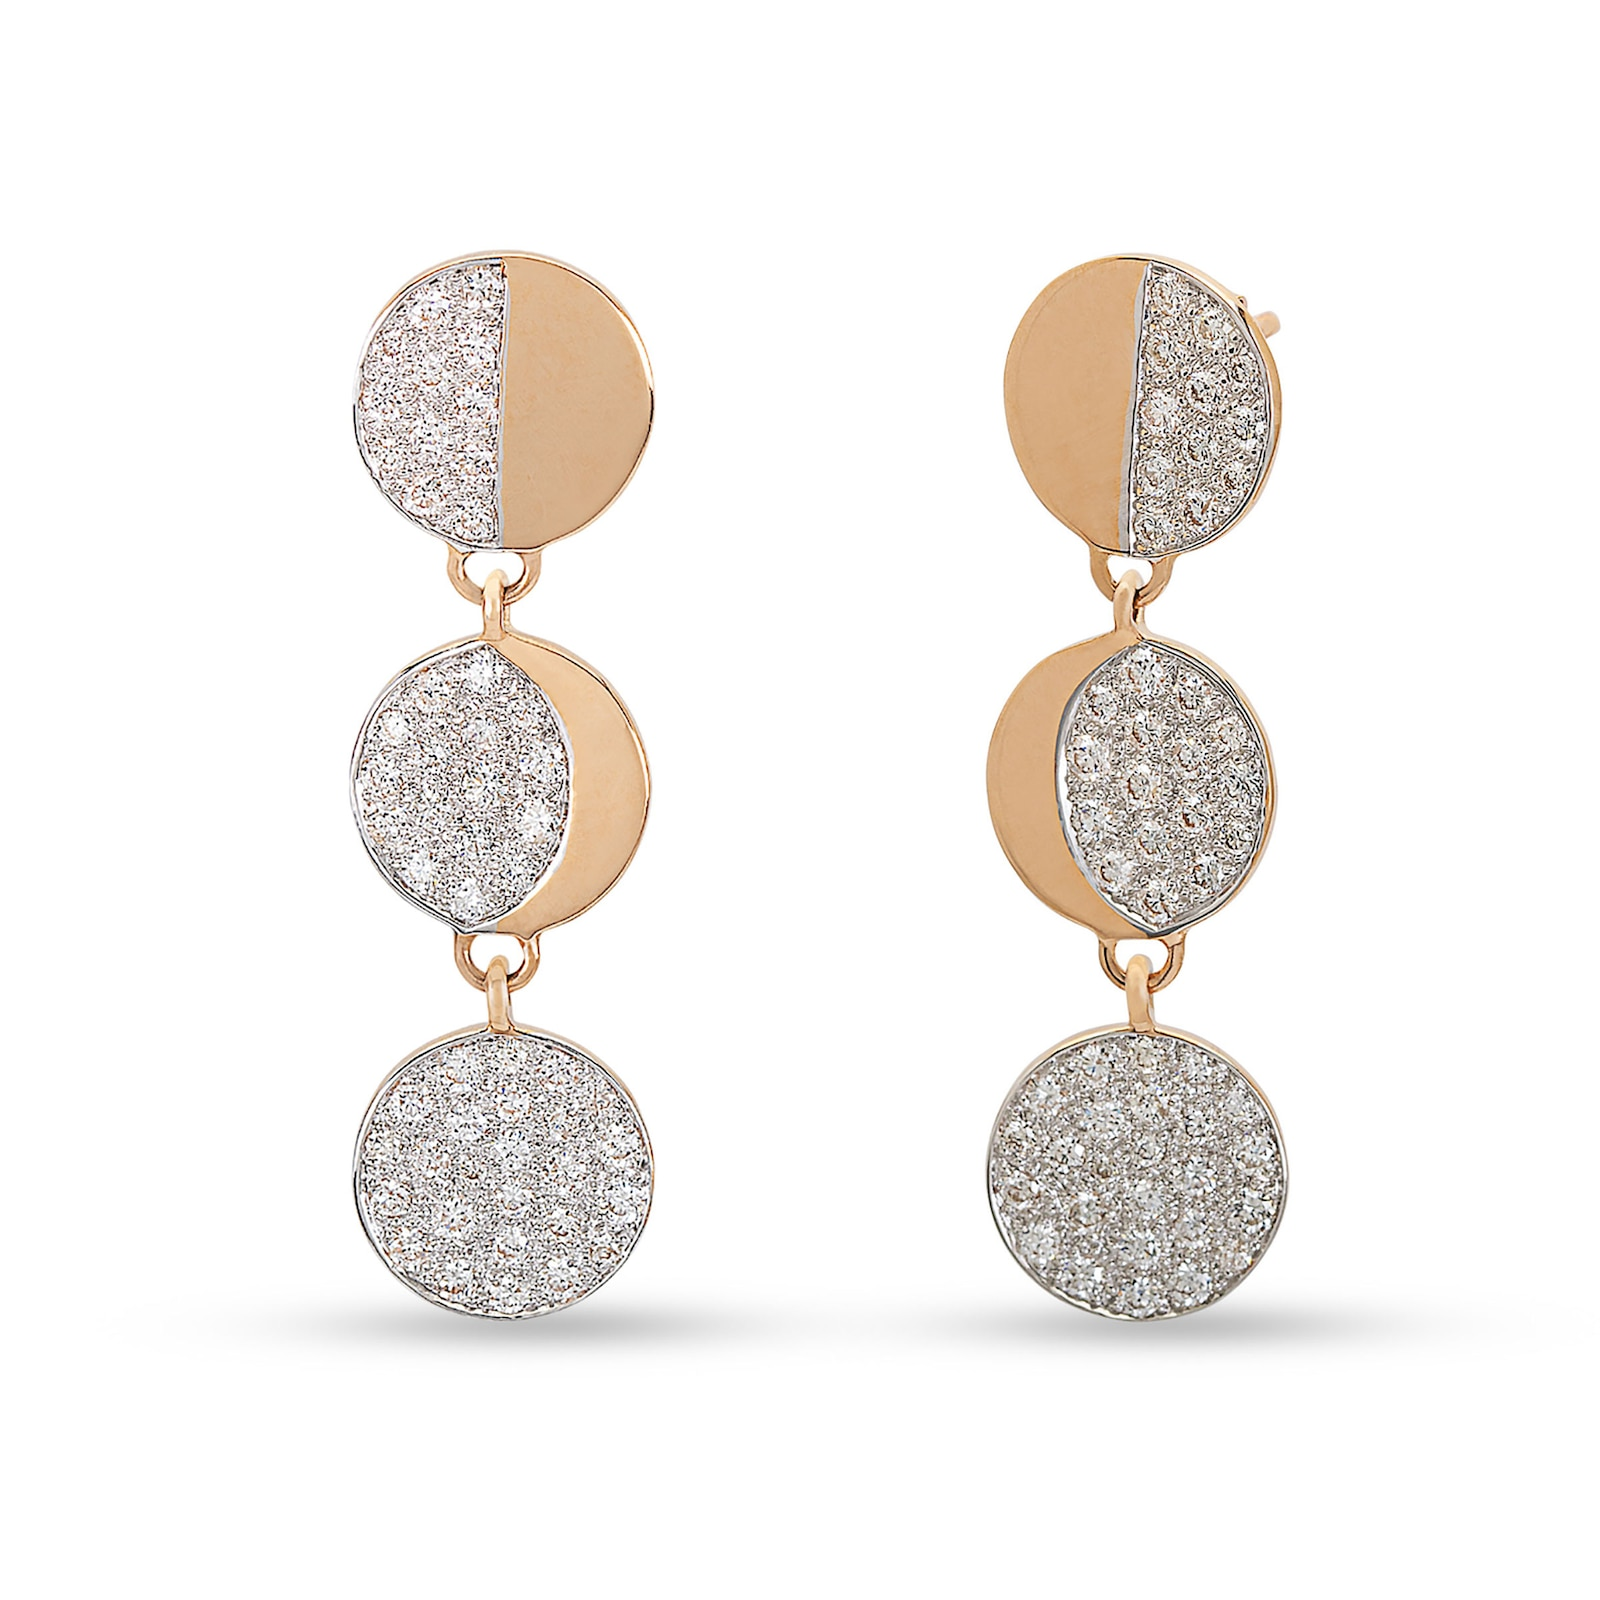 Pamela Love Moon Phase Drop Earrings